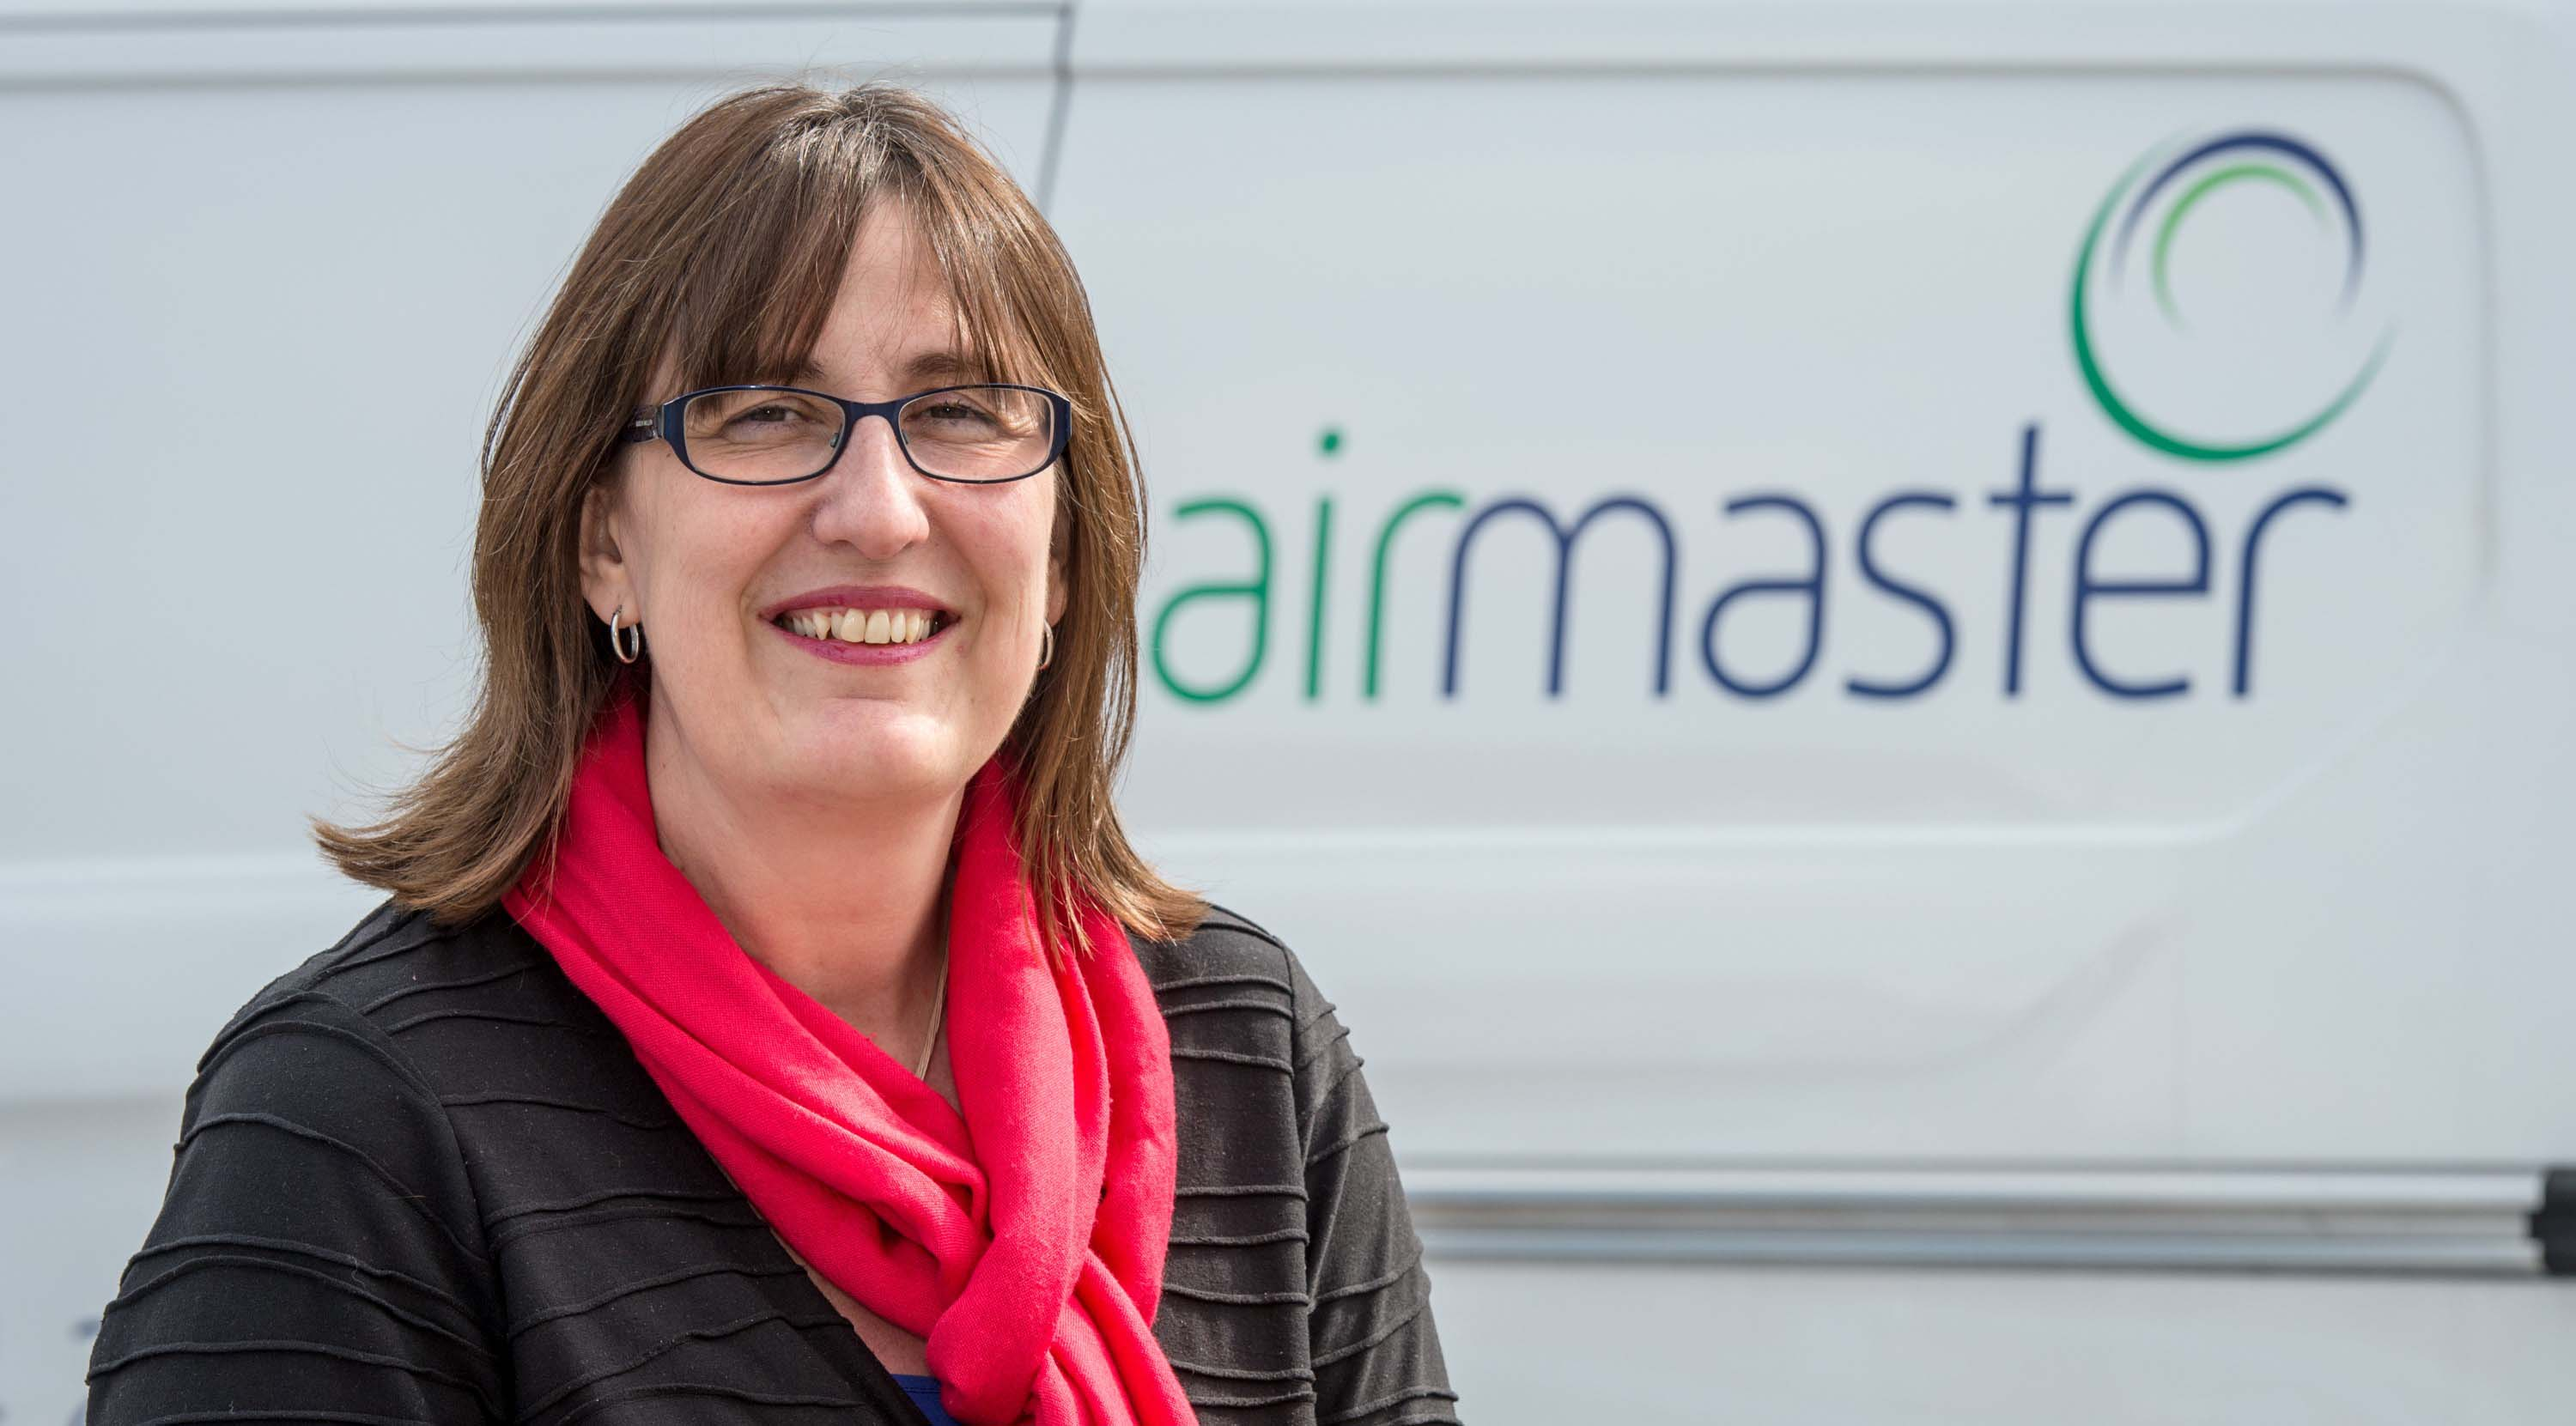 Airmaster Sheffield Lisa pogson Joint Managing Director